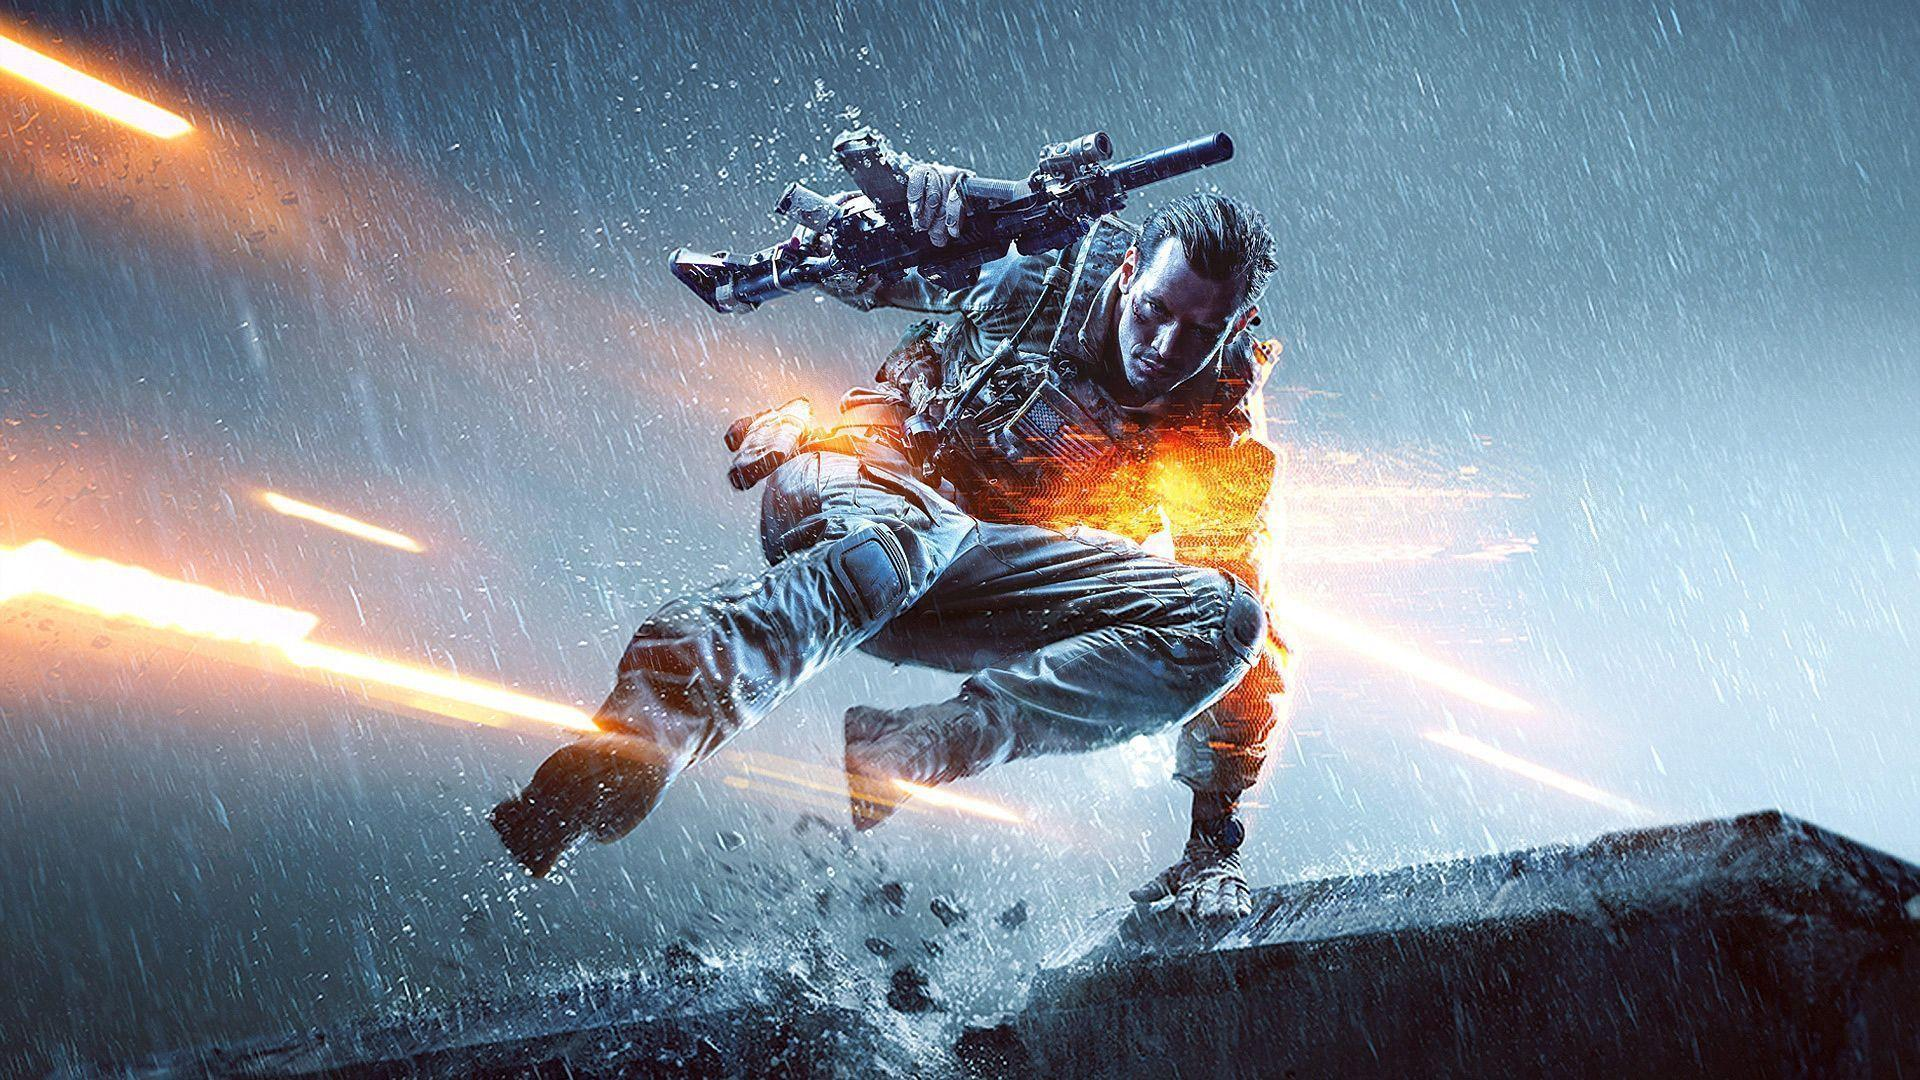 107 Battlefield 4 Wallpapers | Battlefield 4 Backgrounds Page 2